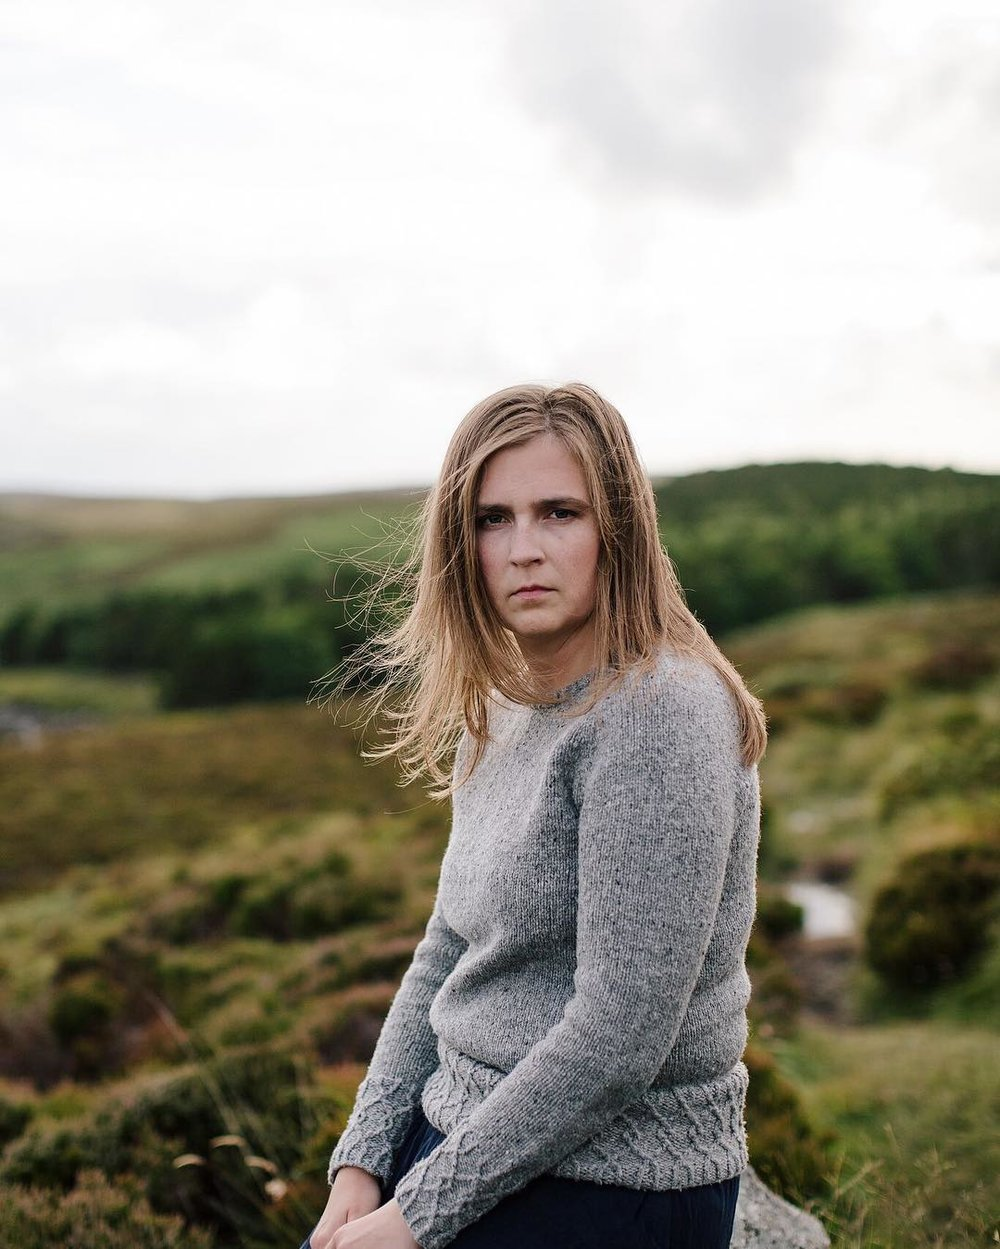 Picture by Jonna Hietala for Laine Magazine